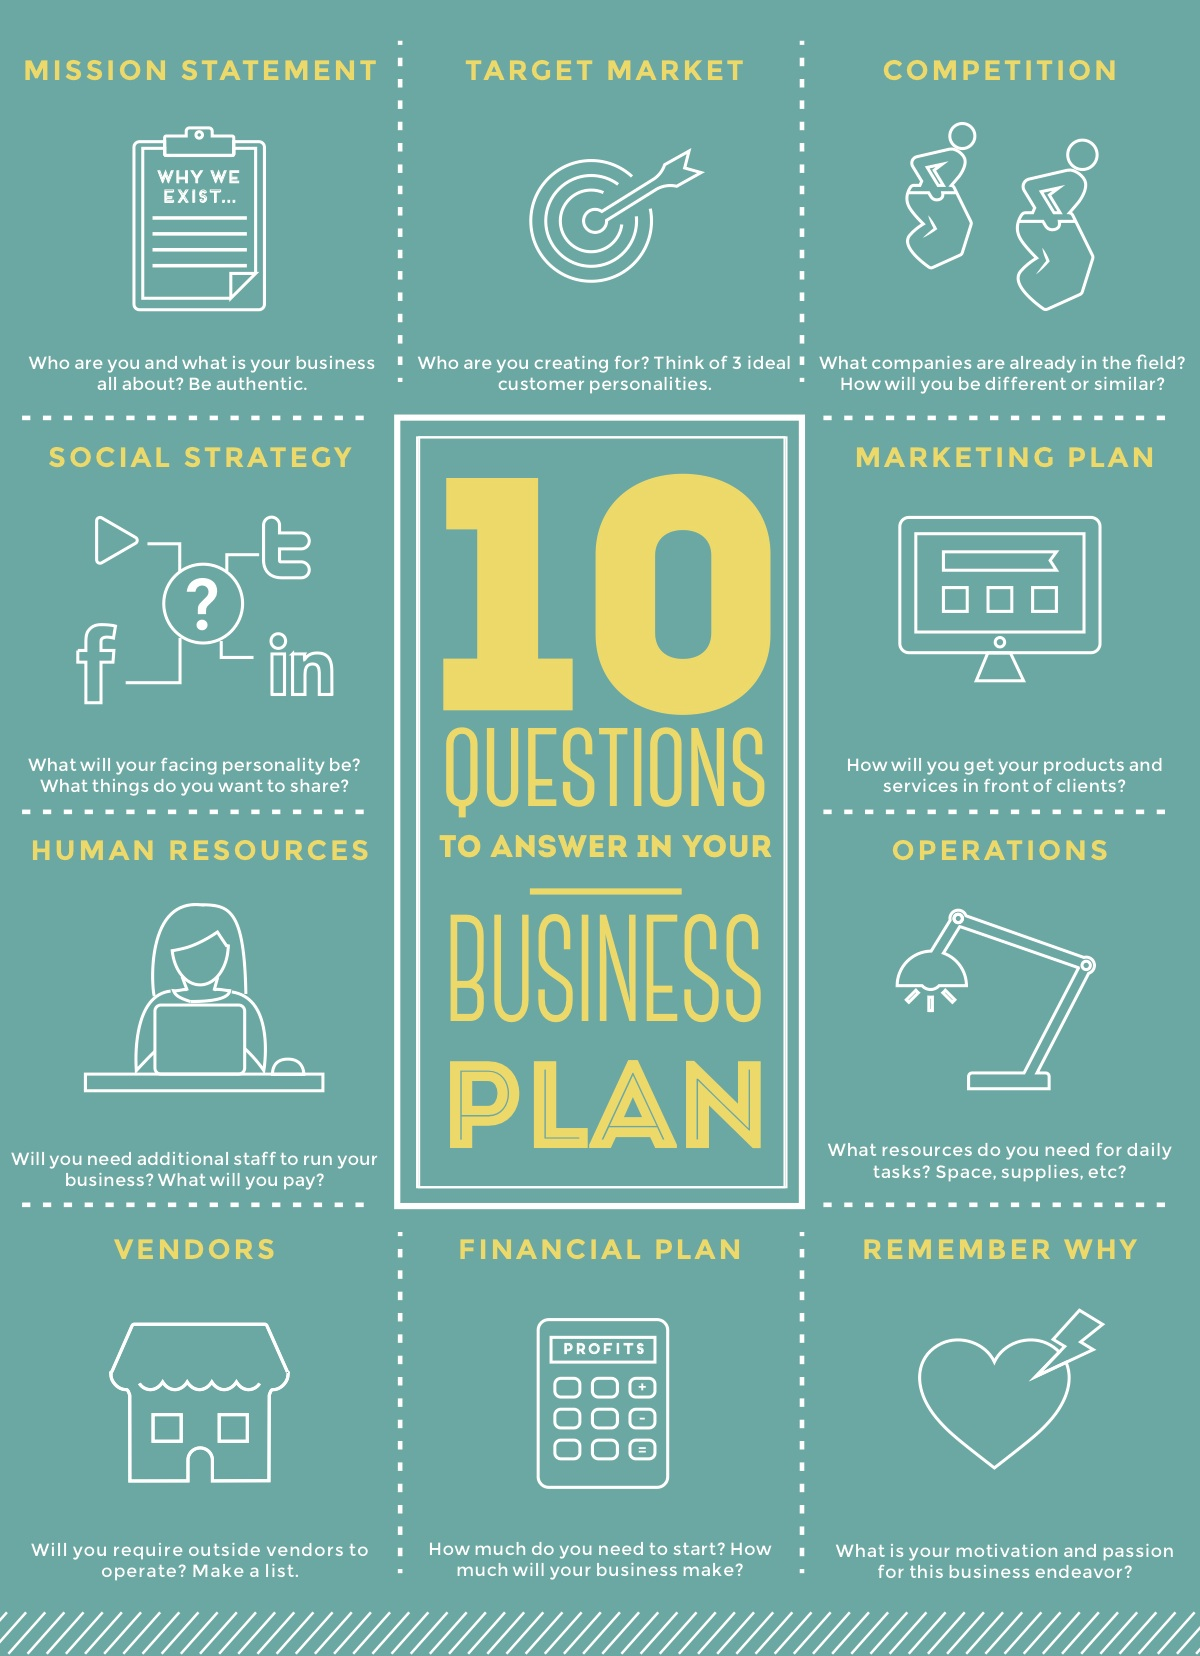 business plan competition questions and answers